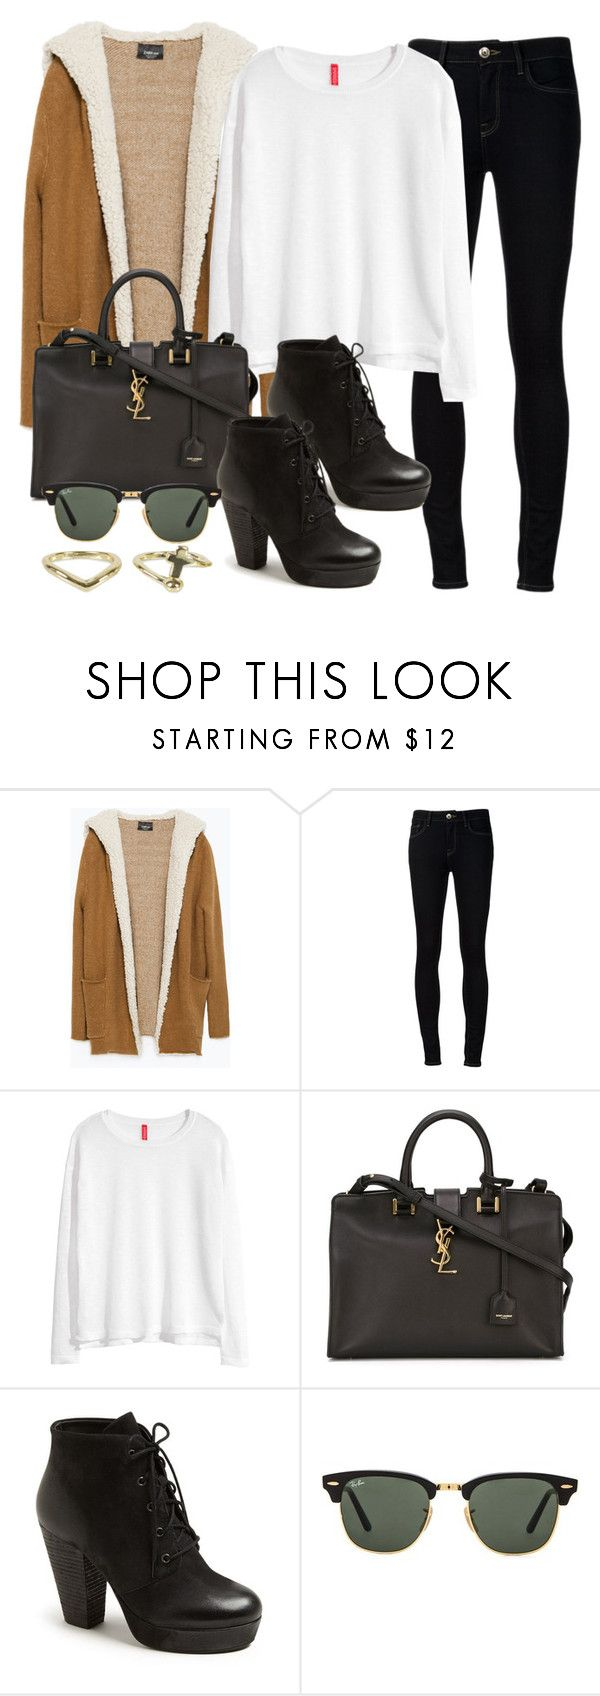 """Style #9422"" by vany-alvarado ❤ liked on Polyvore featuring Zara, Ström, H&M, Yves Saint Laurent, Steve Madden, Ray-Ban and NLY Accessories"